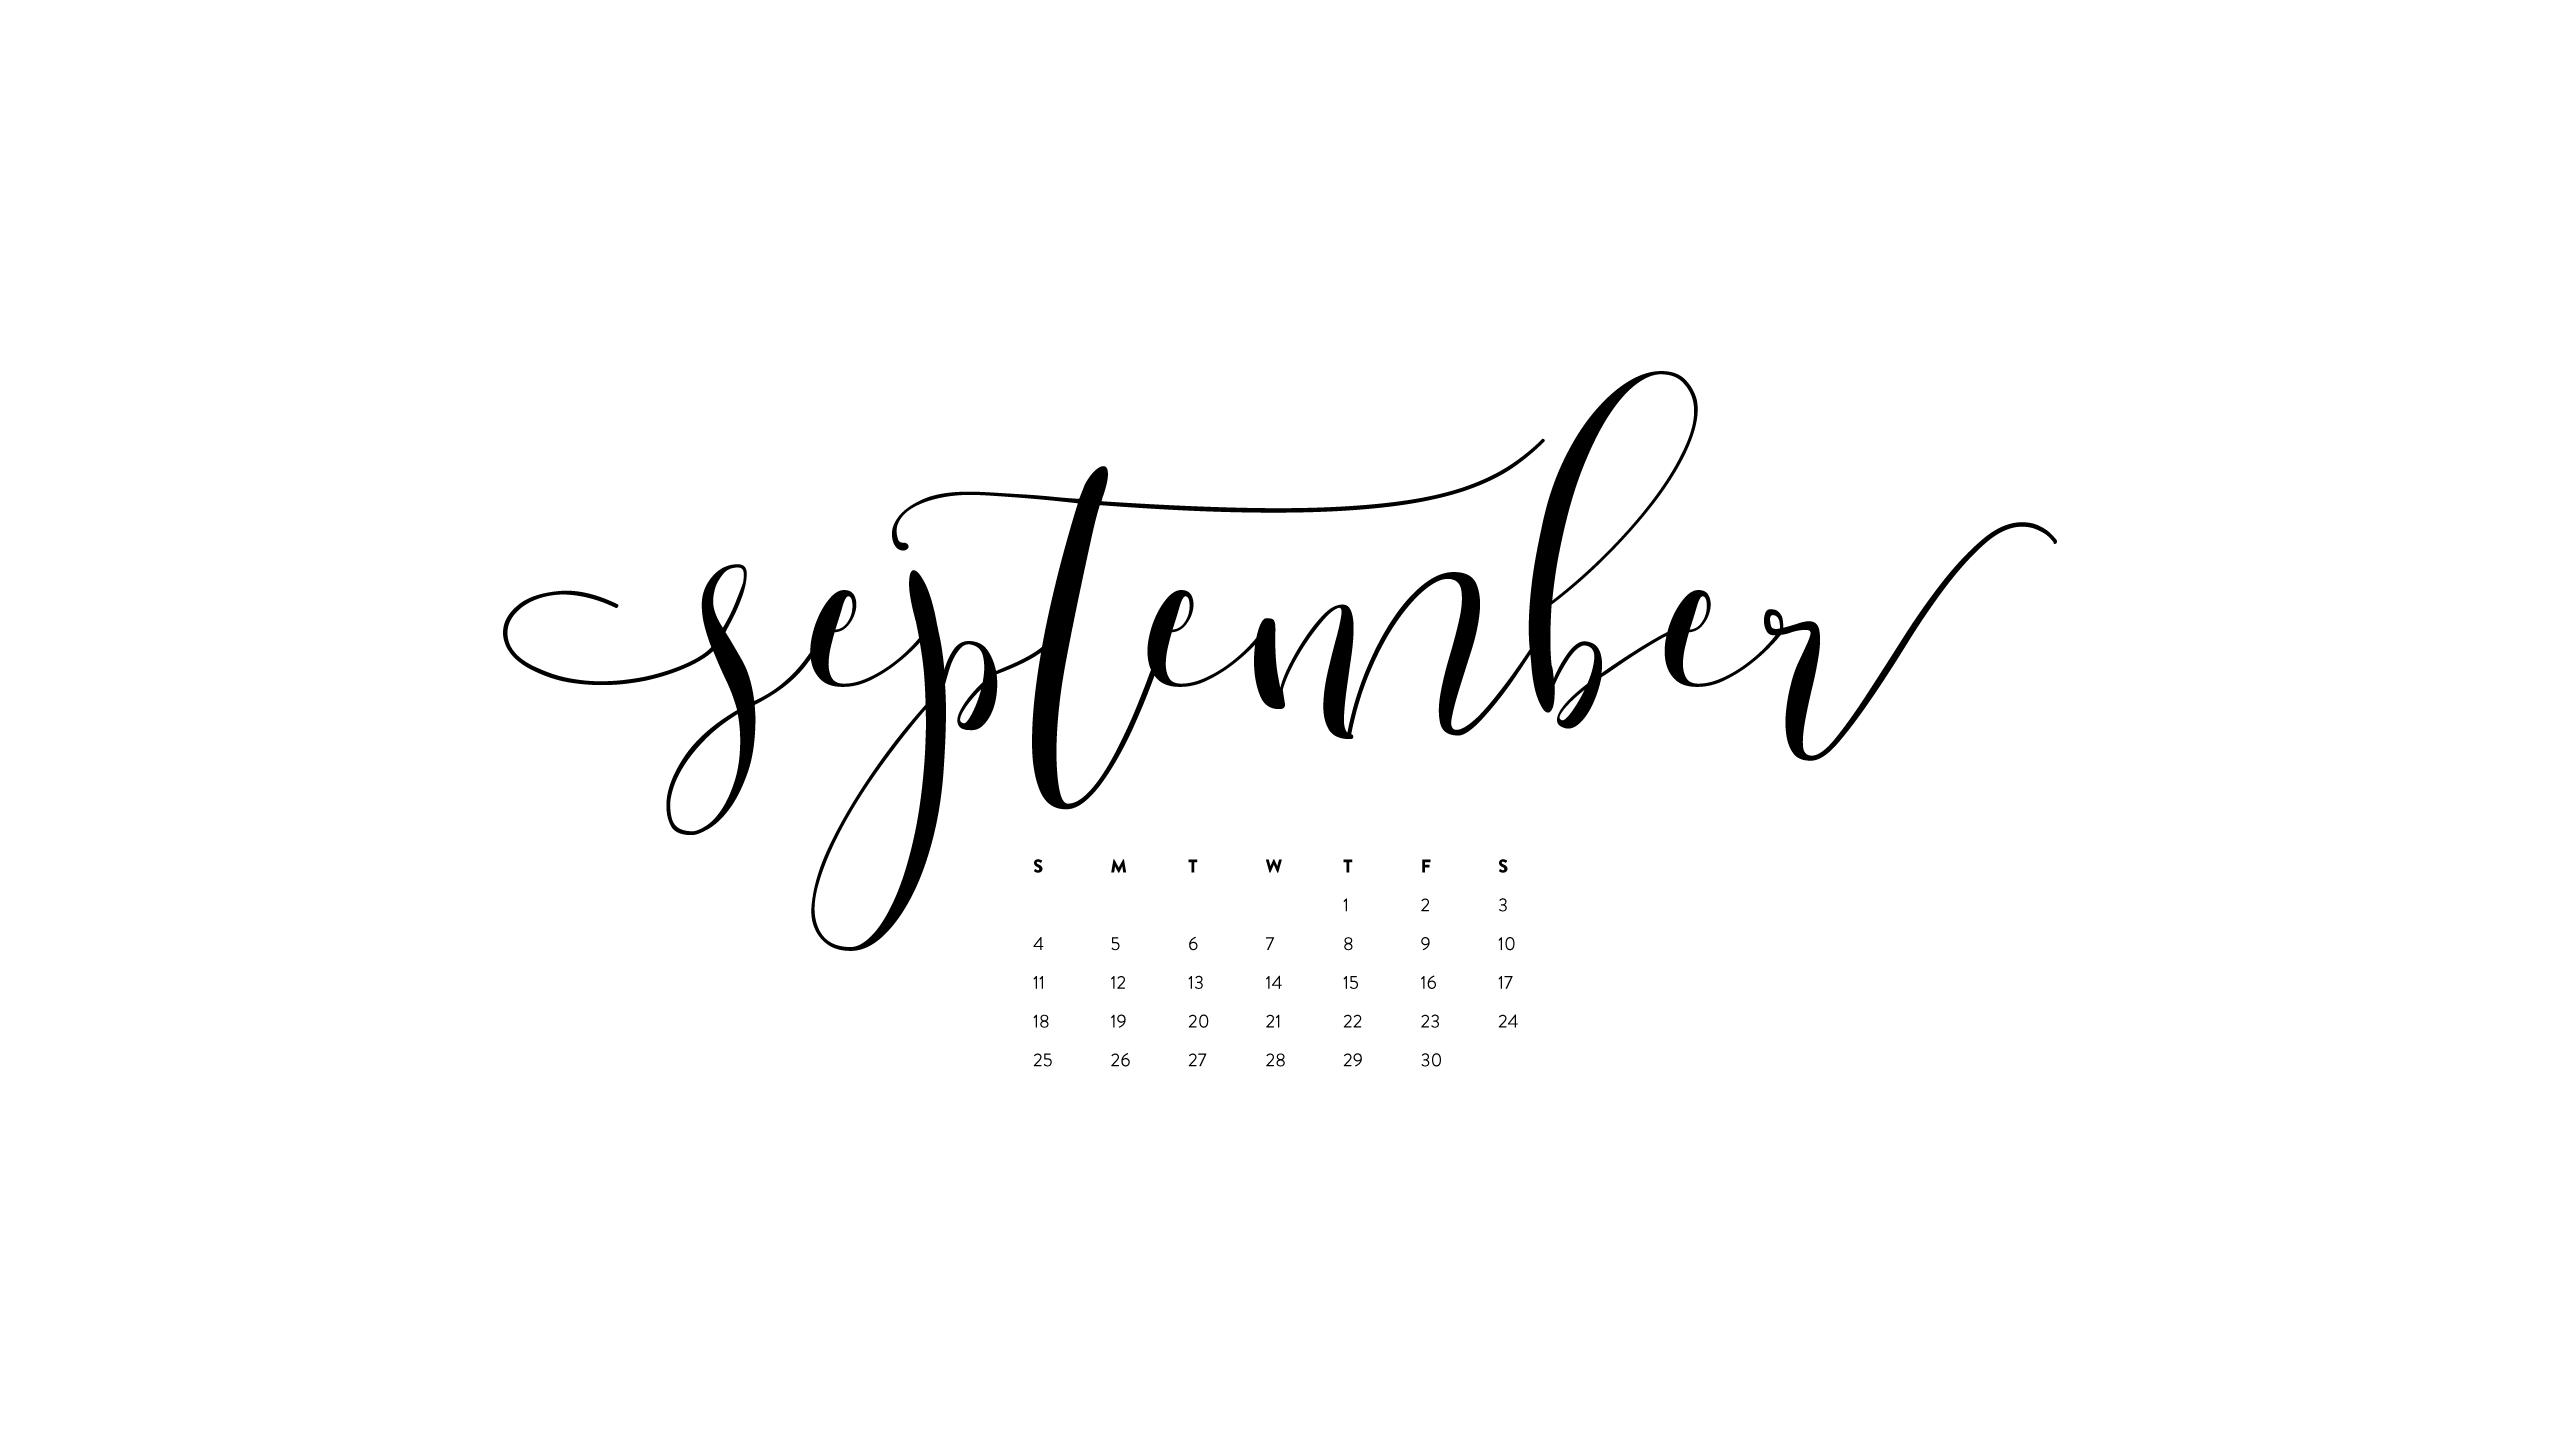 September 2017 Free Calendars and Wallpaper - Red Stamp